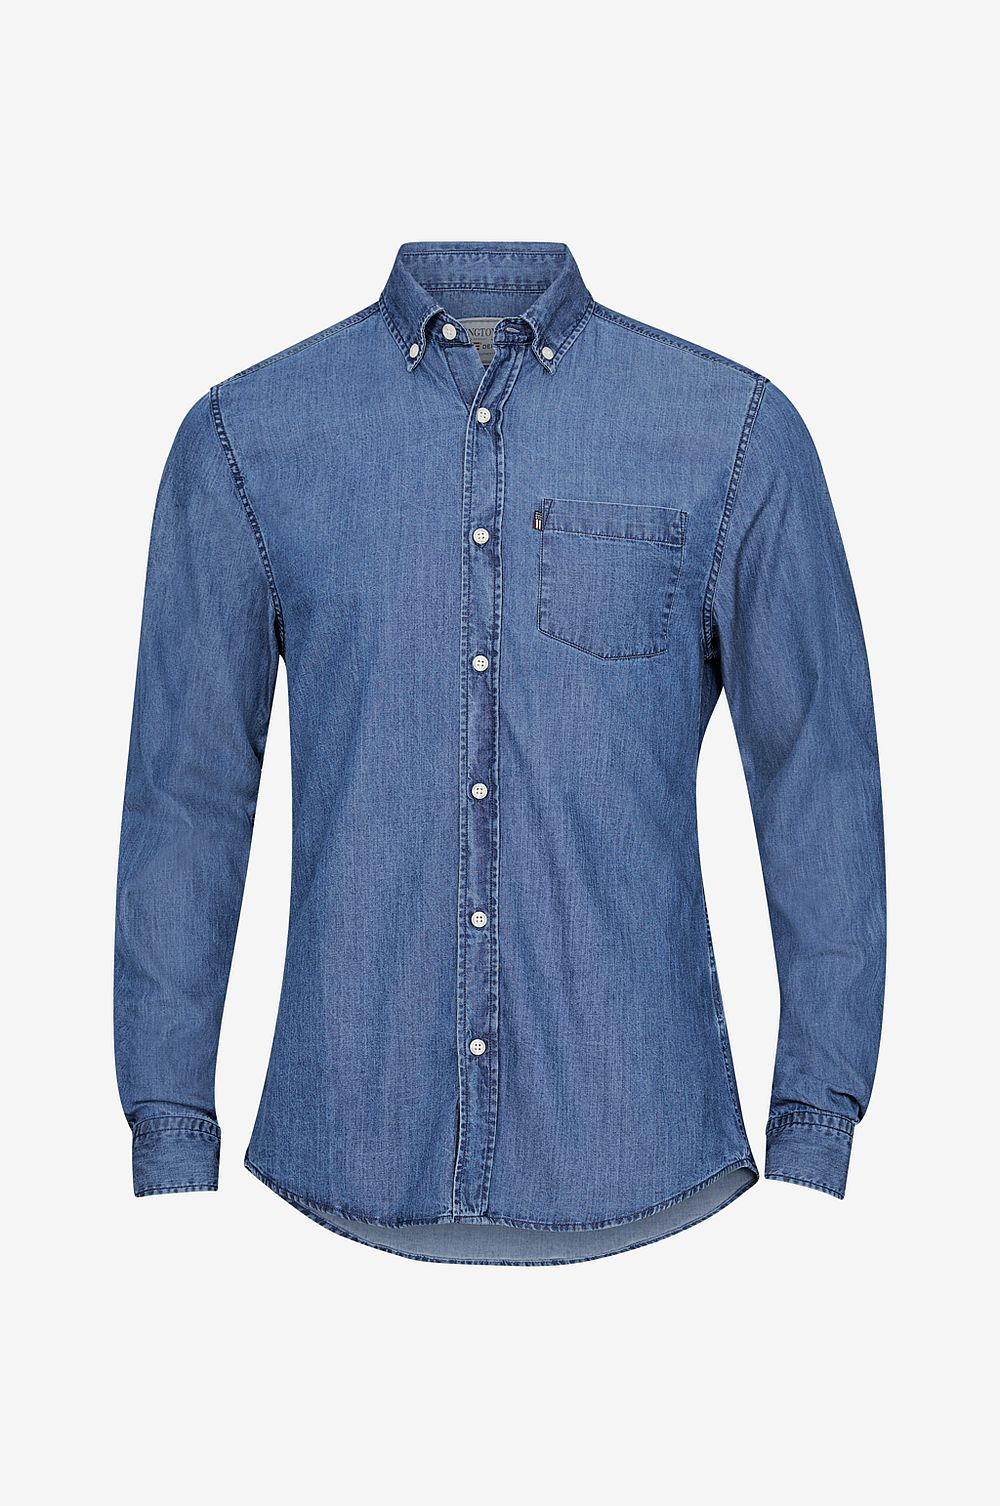 Lexington Skjorta Clive Denim Shirt - Blå - Herr